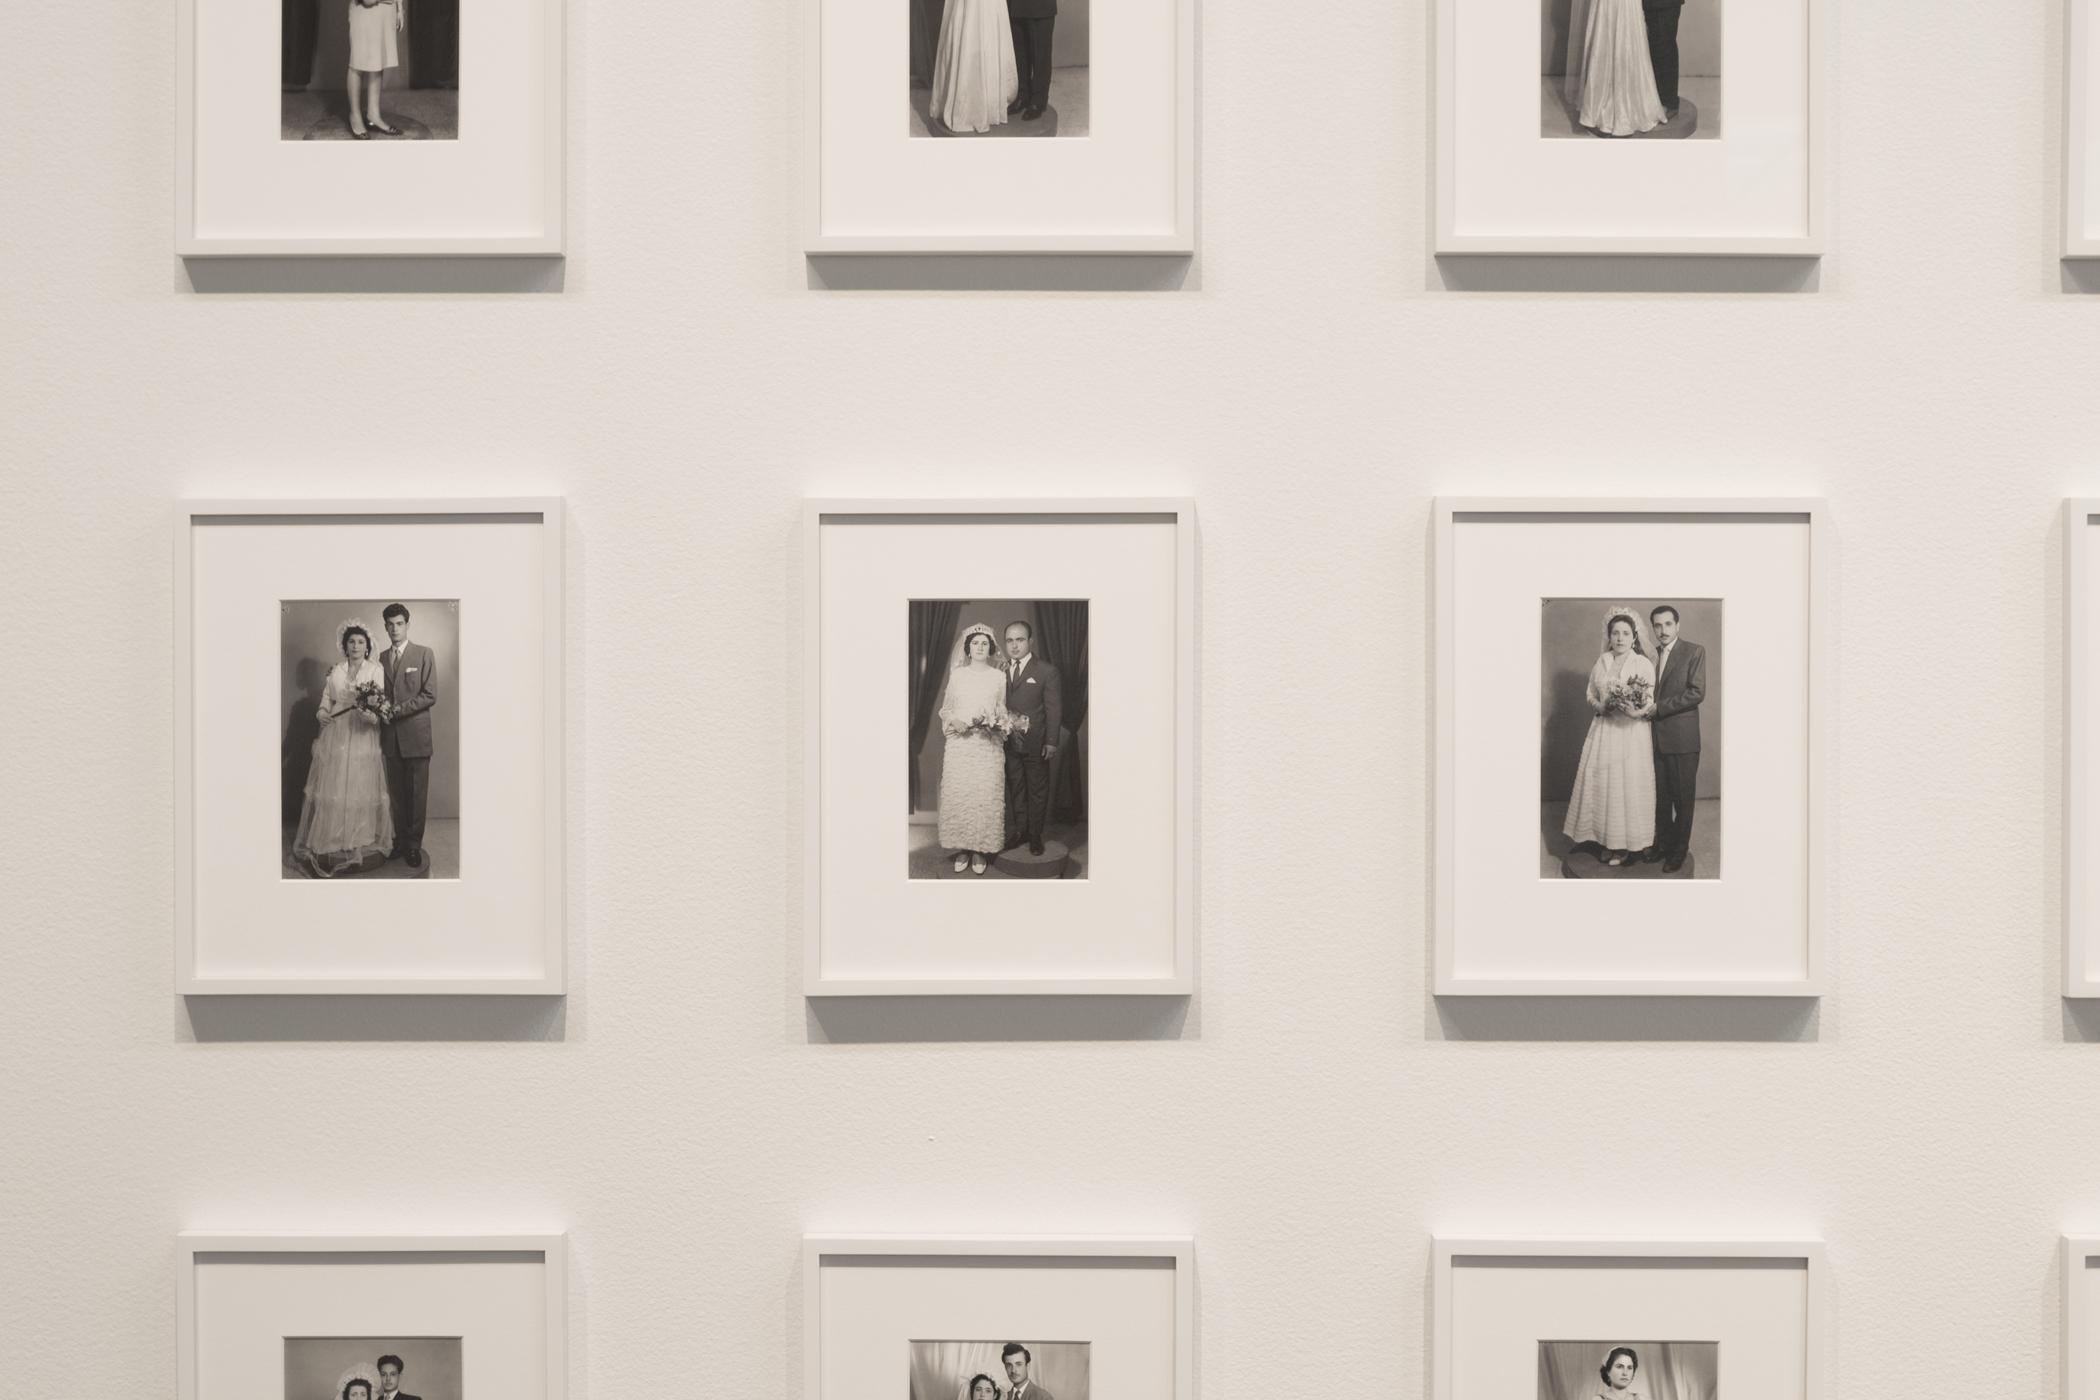 Identically sized, formal black-and-white wedding portraits are matted and framed in white, hanging in even rows on a white wall.